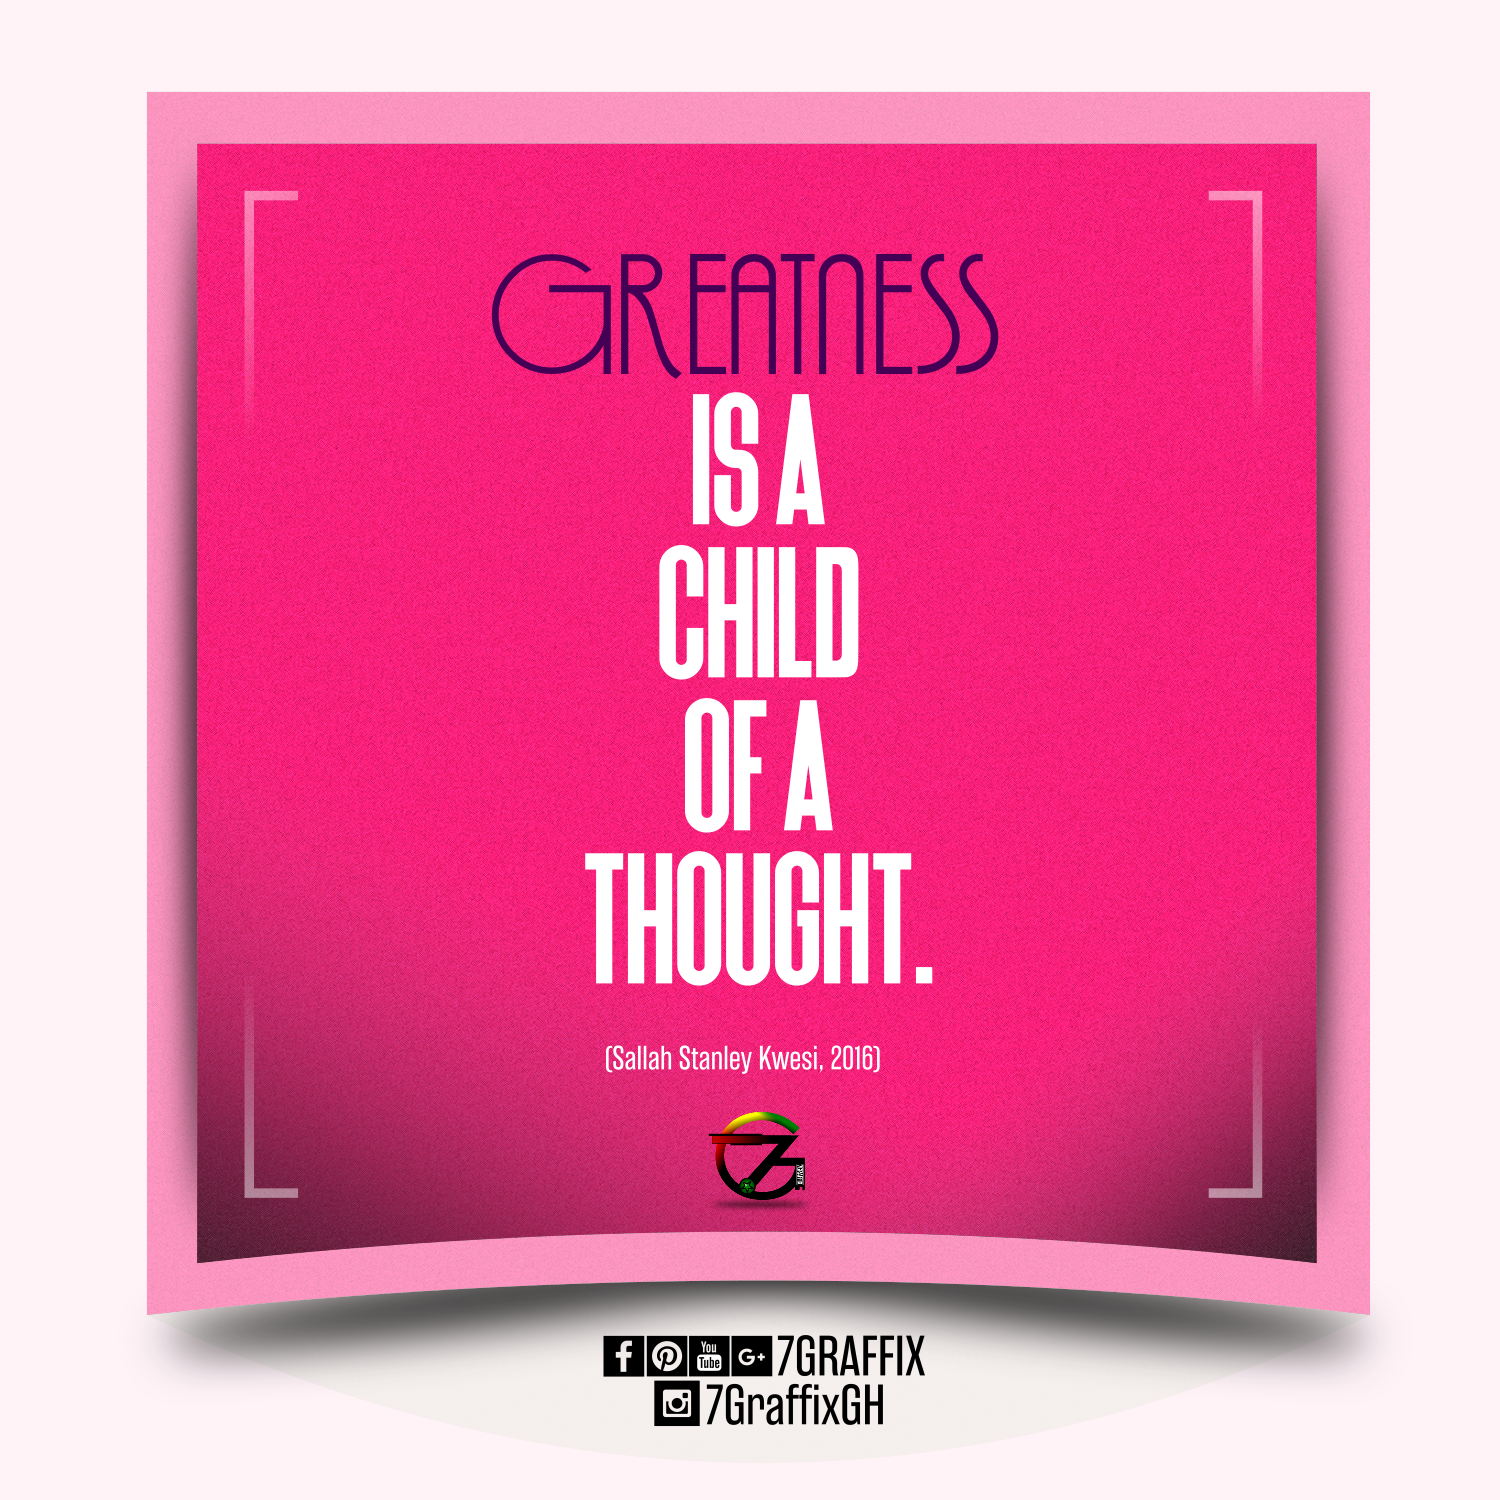 Daily Inspirational Messages Designs By 7graffix Sallah Stanley